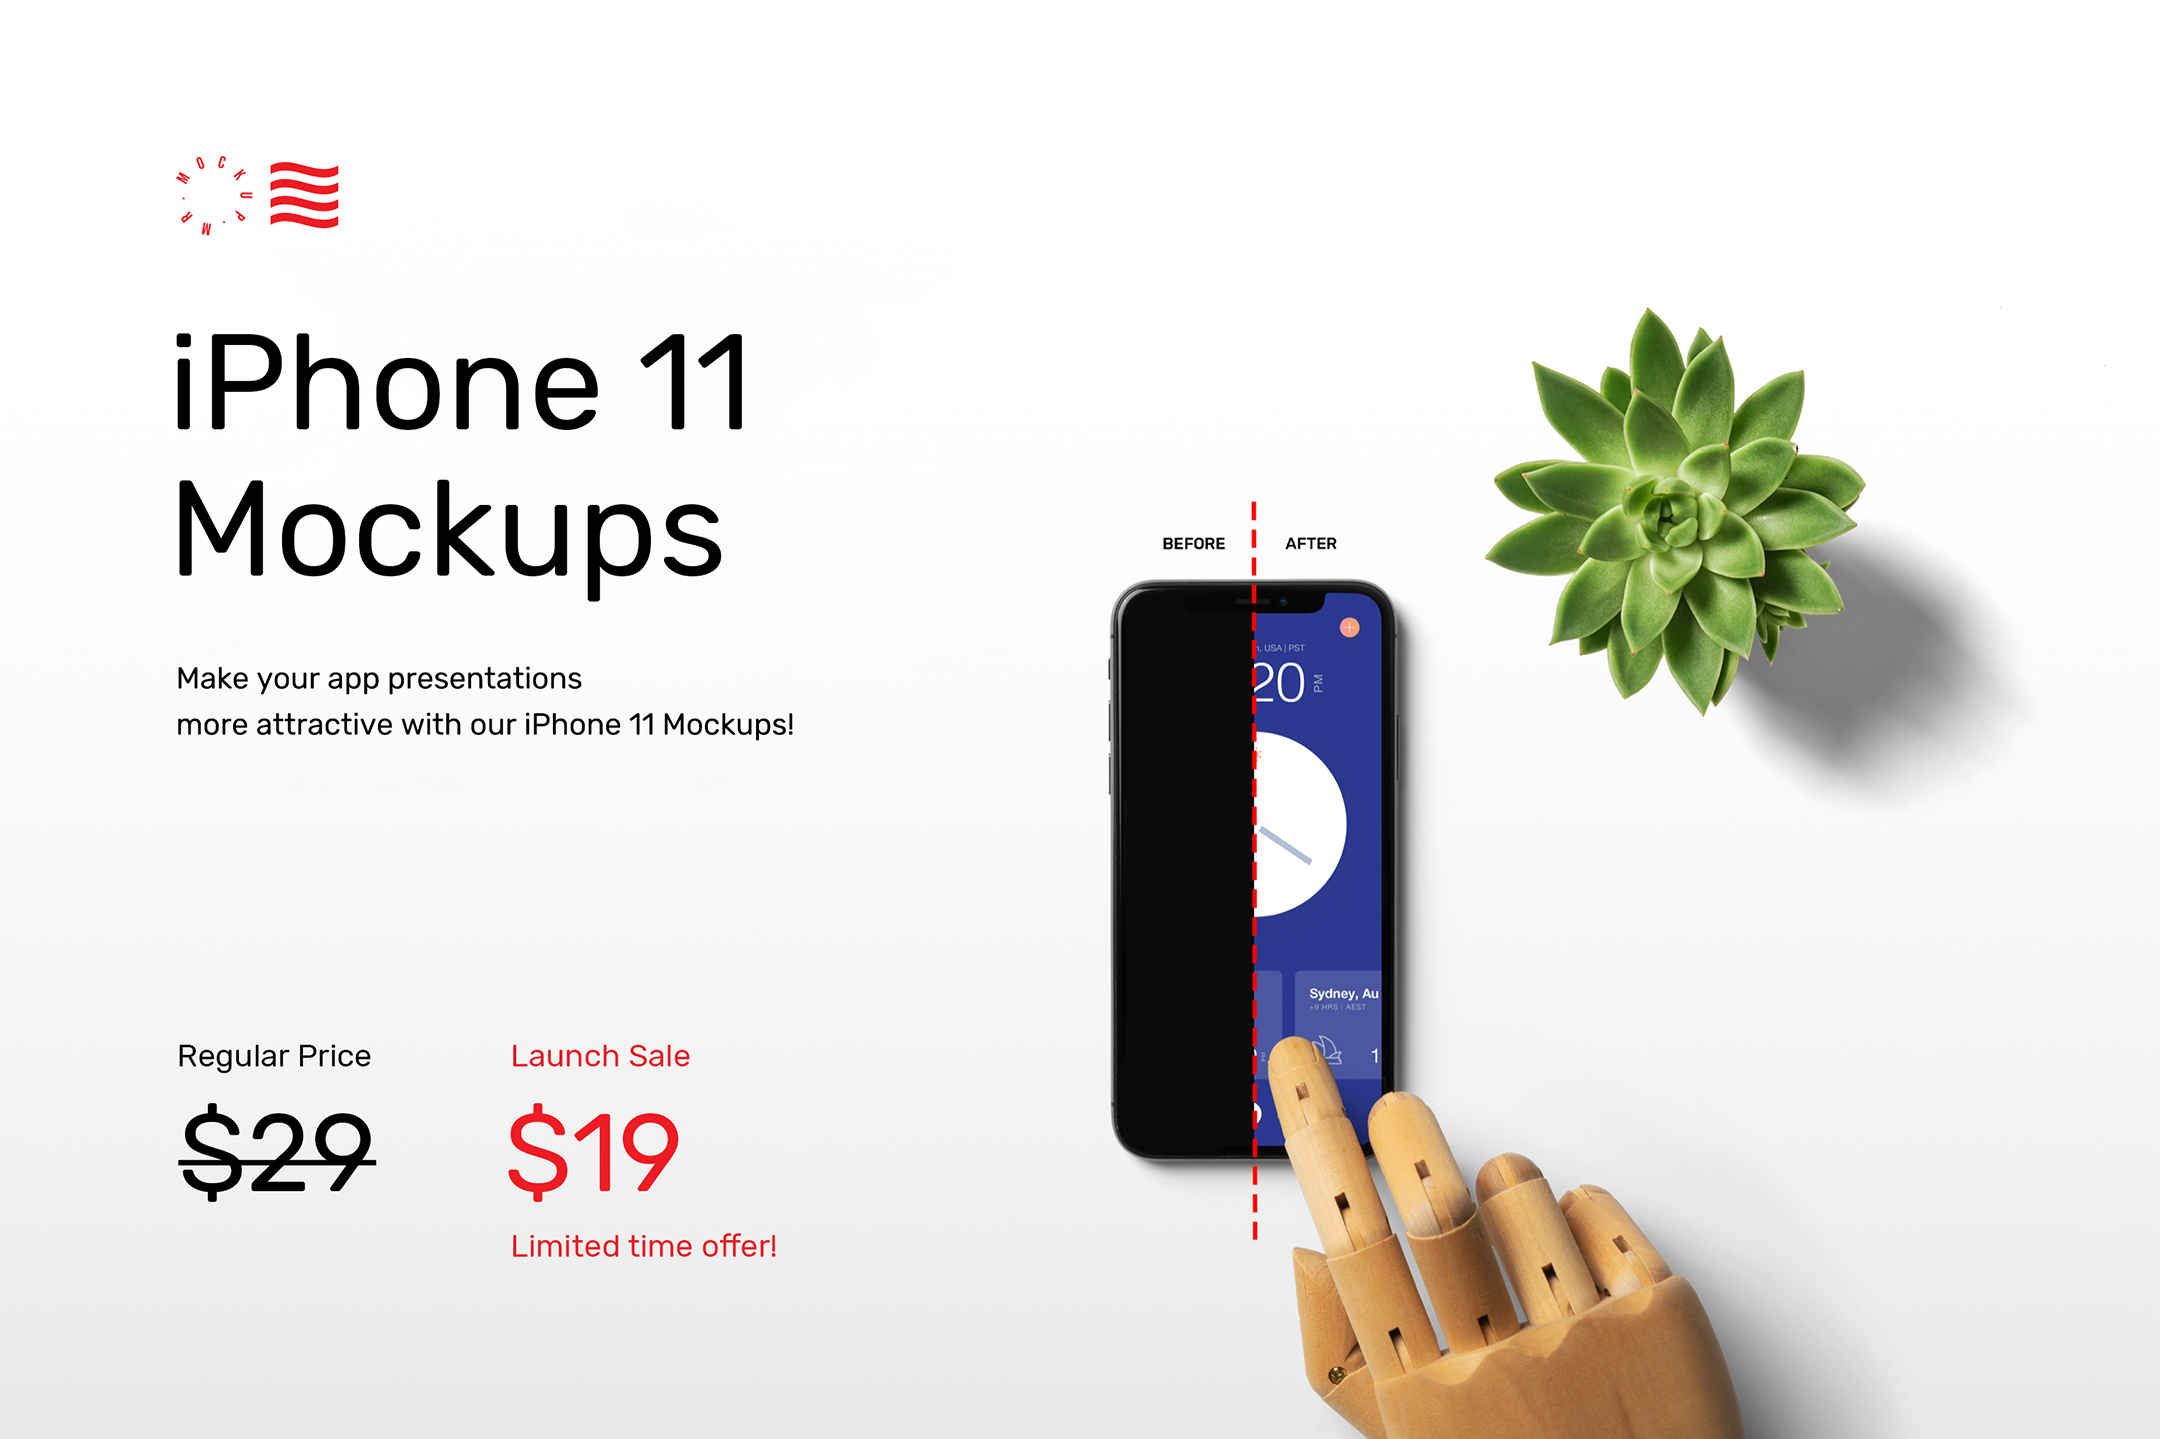 iPhone 11 Mockups Pack